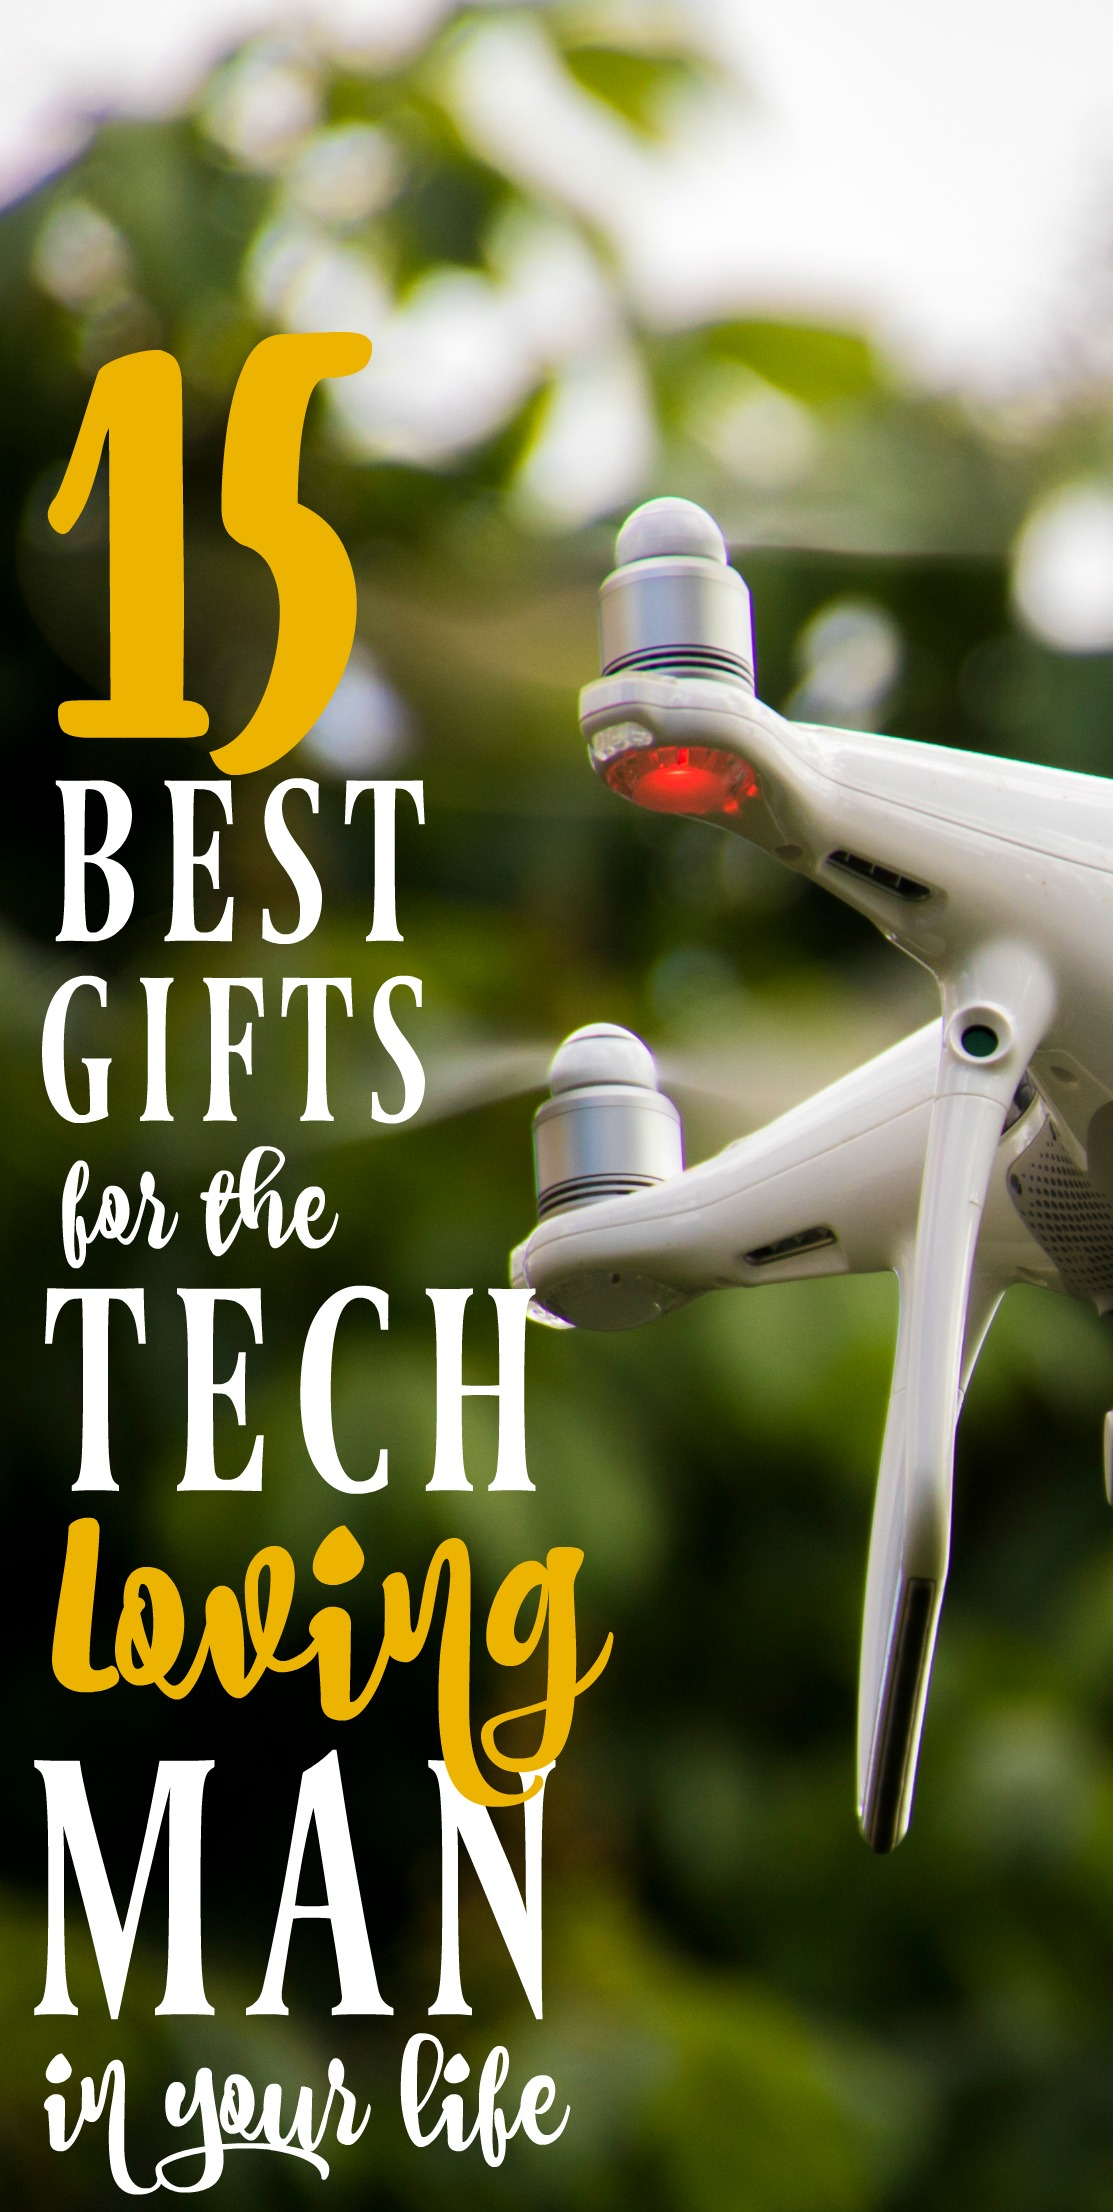 These tech gift ideas for men are perfect if you don't know what to buy for the man in your life!